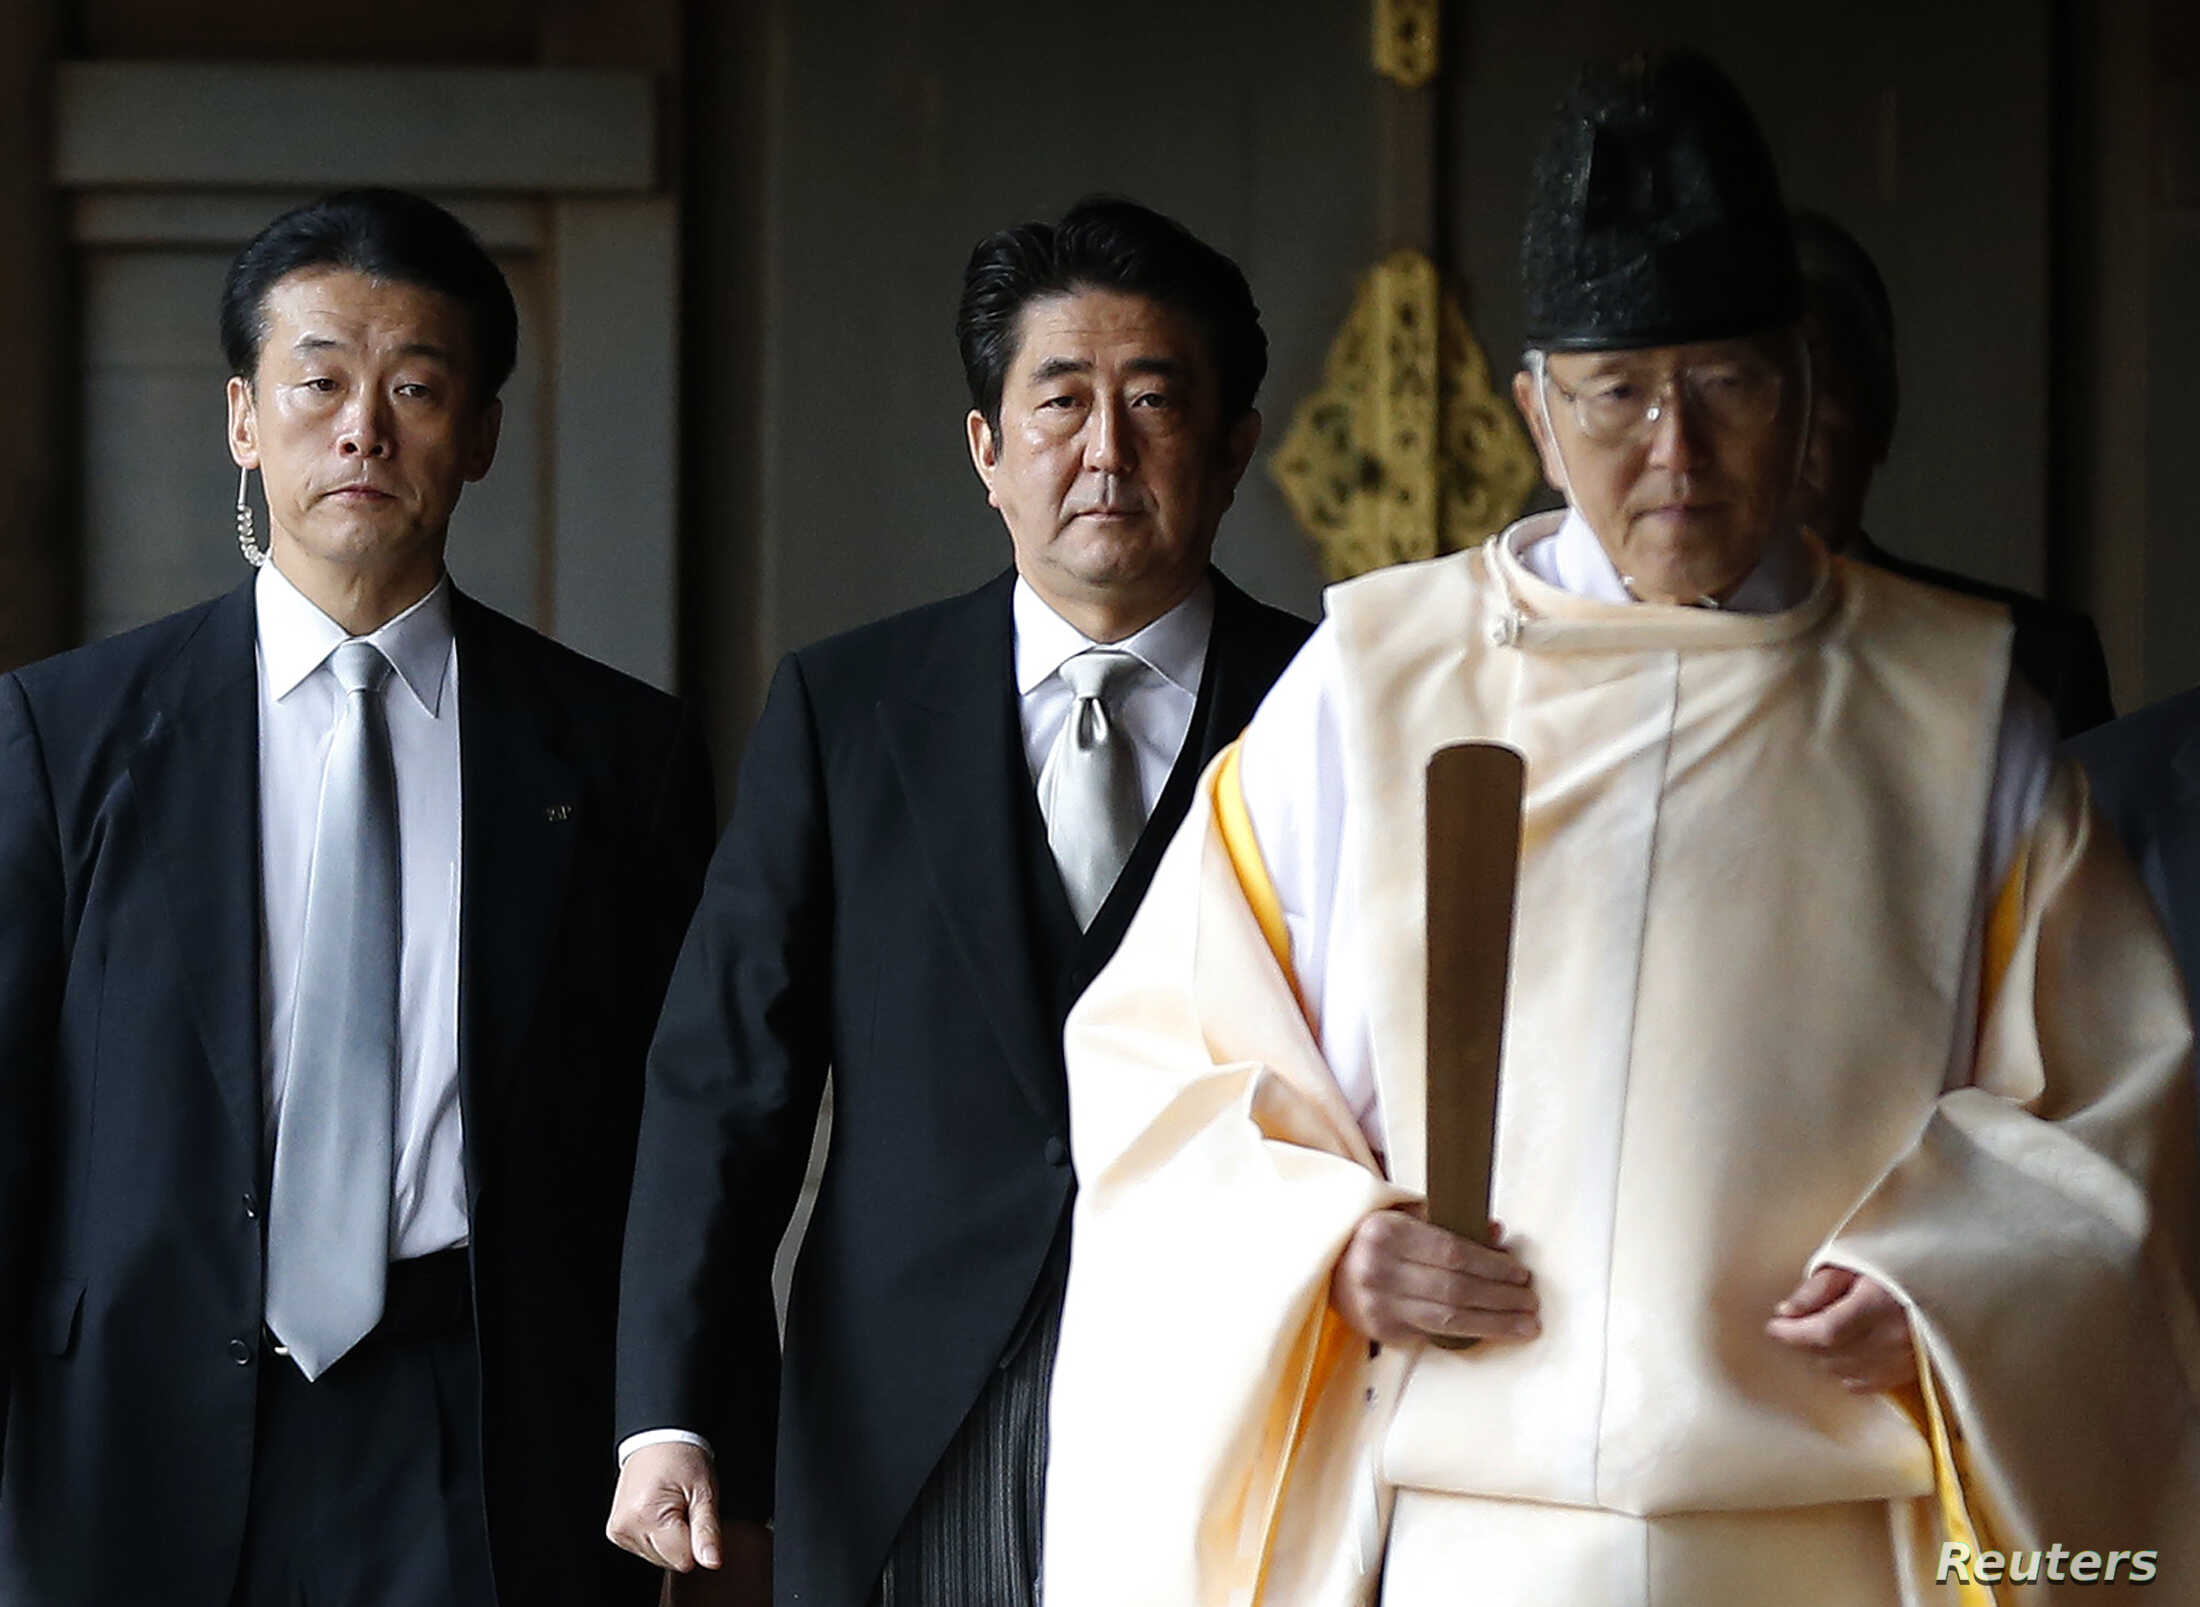 Japan's Prime Minister Shinzo Abe is led by a Shinto priest as he visits Yasukuni shrine in Tokyo, Dec. 26, 2013.